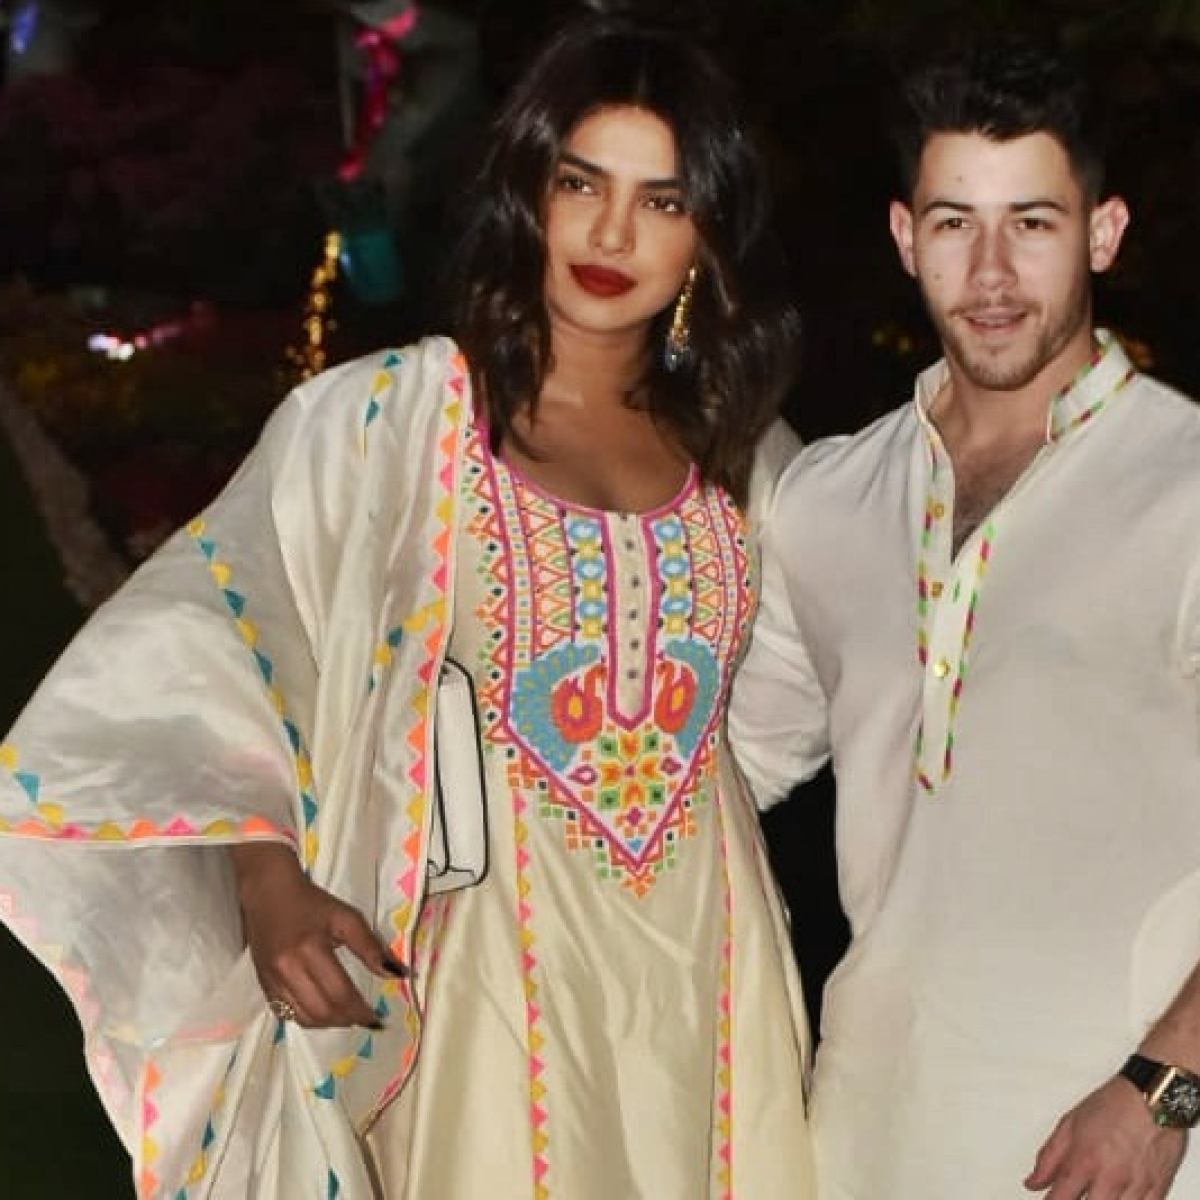 Coronavirus scare for Priyanka Chopra,  refuses to shake hands at Isha Ambani's Holi bash